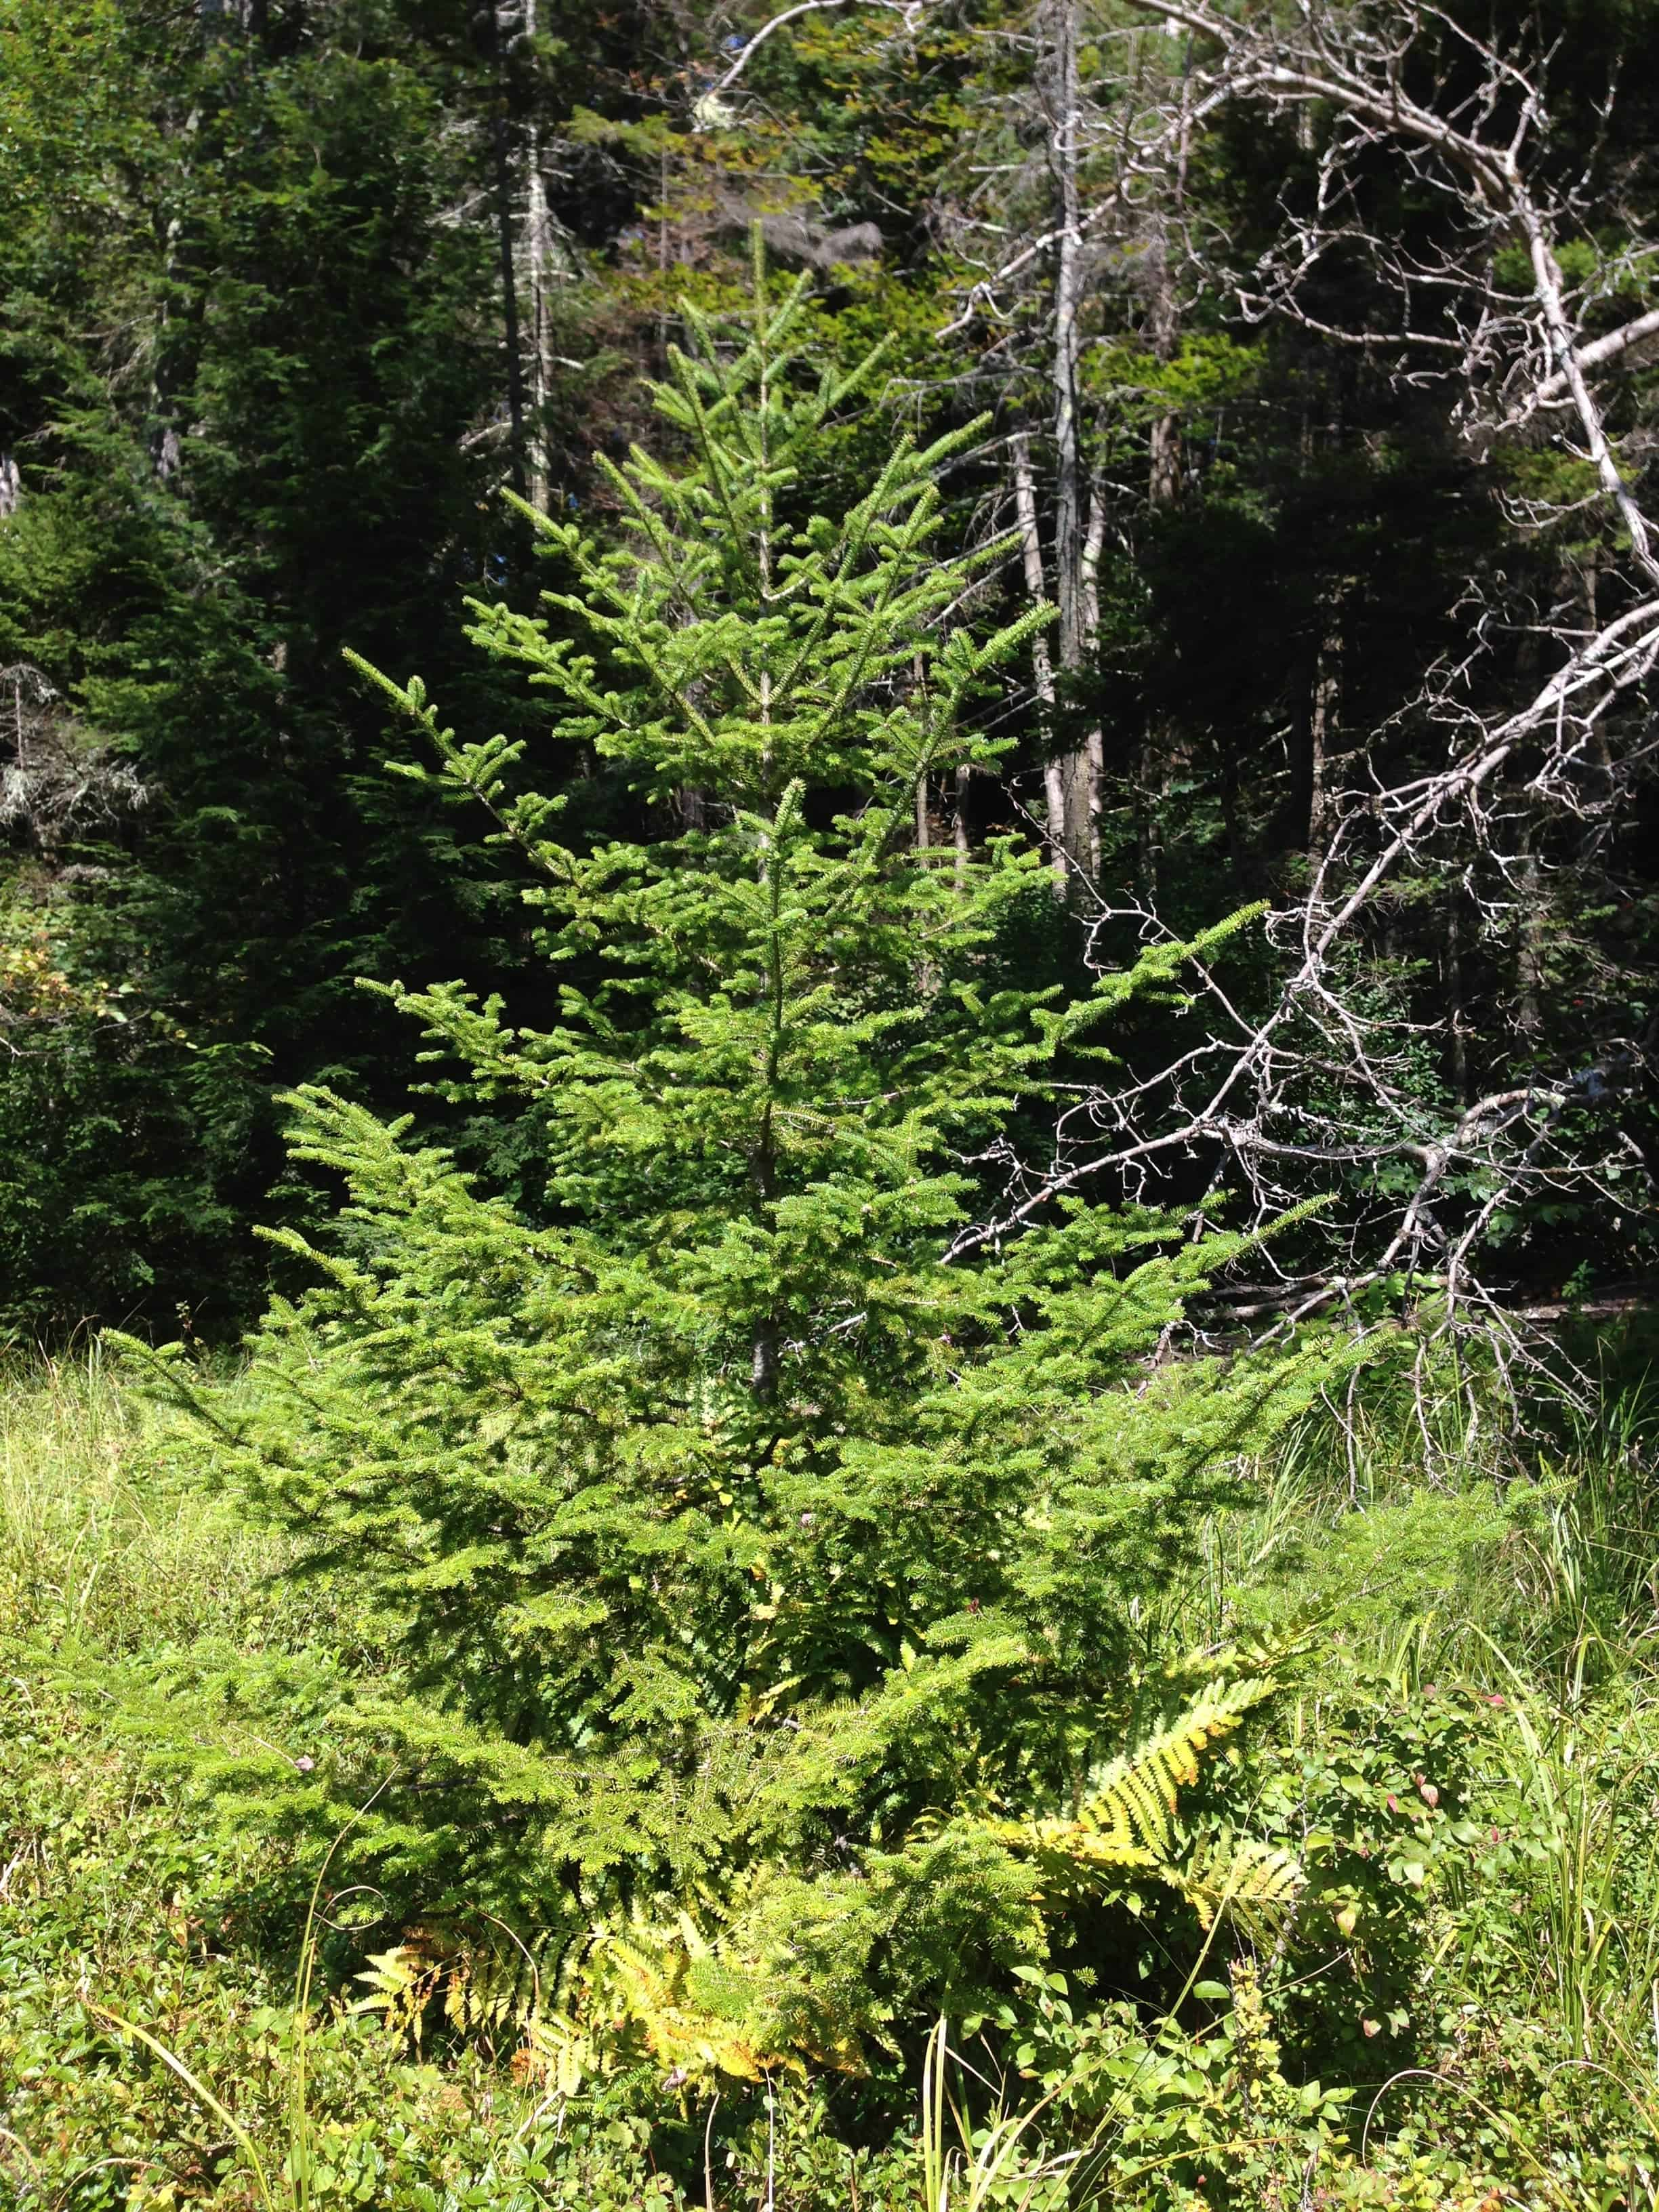 Sparse Christmas Tree Types.The Different Species Of Christmas Tree And How To Pick